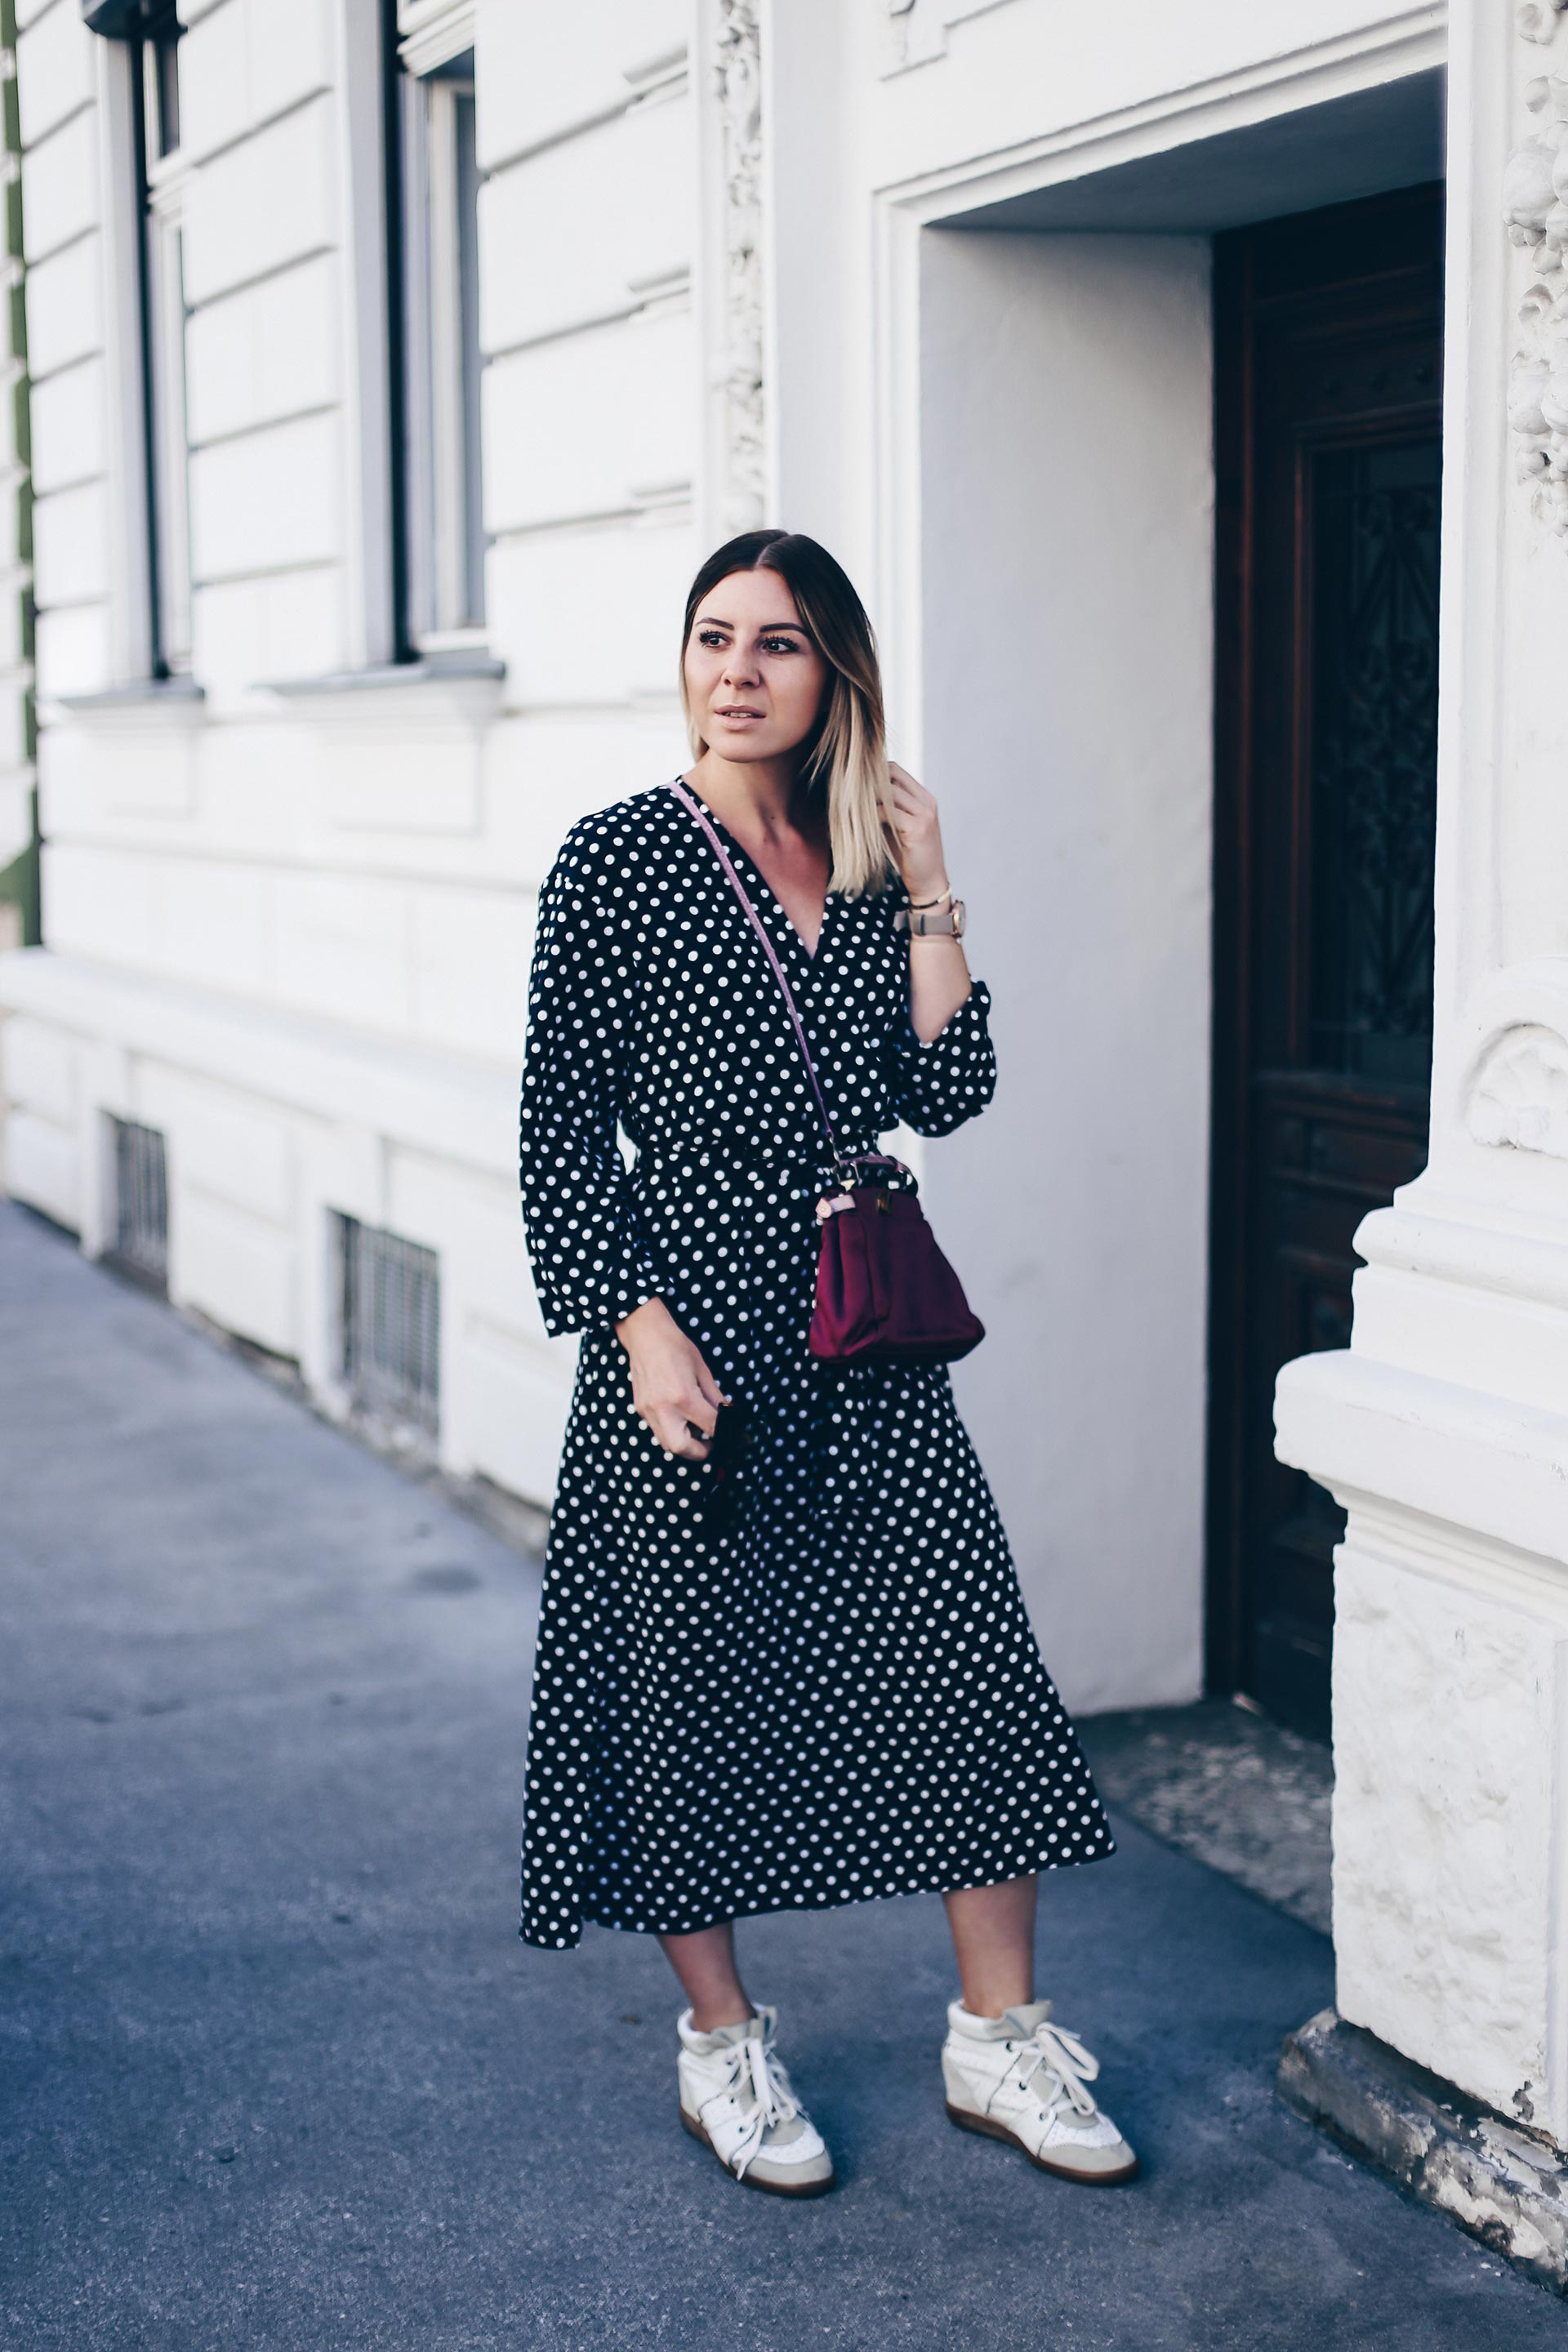 Polka Dots Kleid stylen, Herbst Trends, Sneaker Wedges Isabel Marant, Fendi Peekaboo Bag, Streetstyle, Outfit Ideen, Fashion Blog, Modeblog, Outfit Blog, www.whoismocca.com